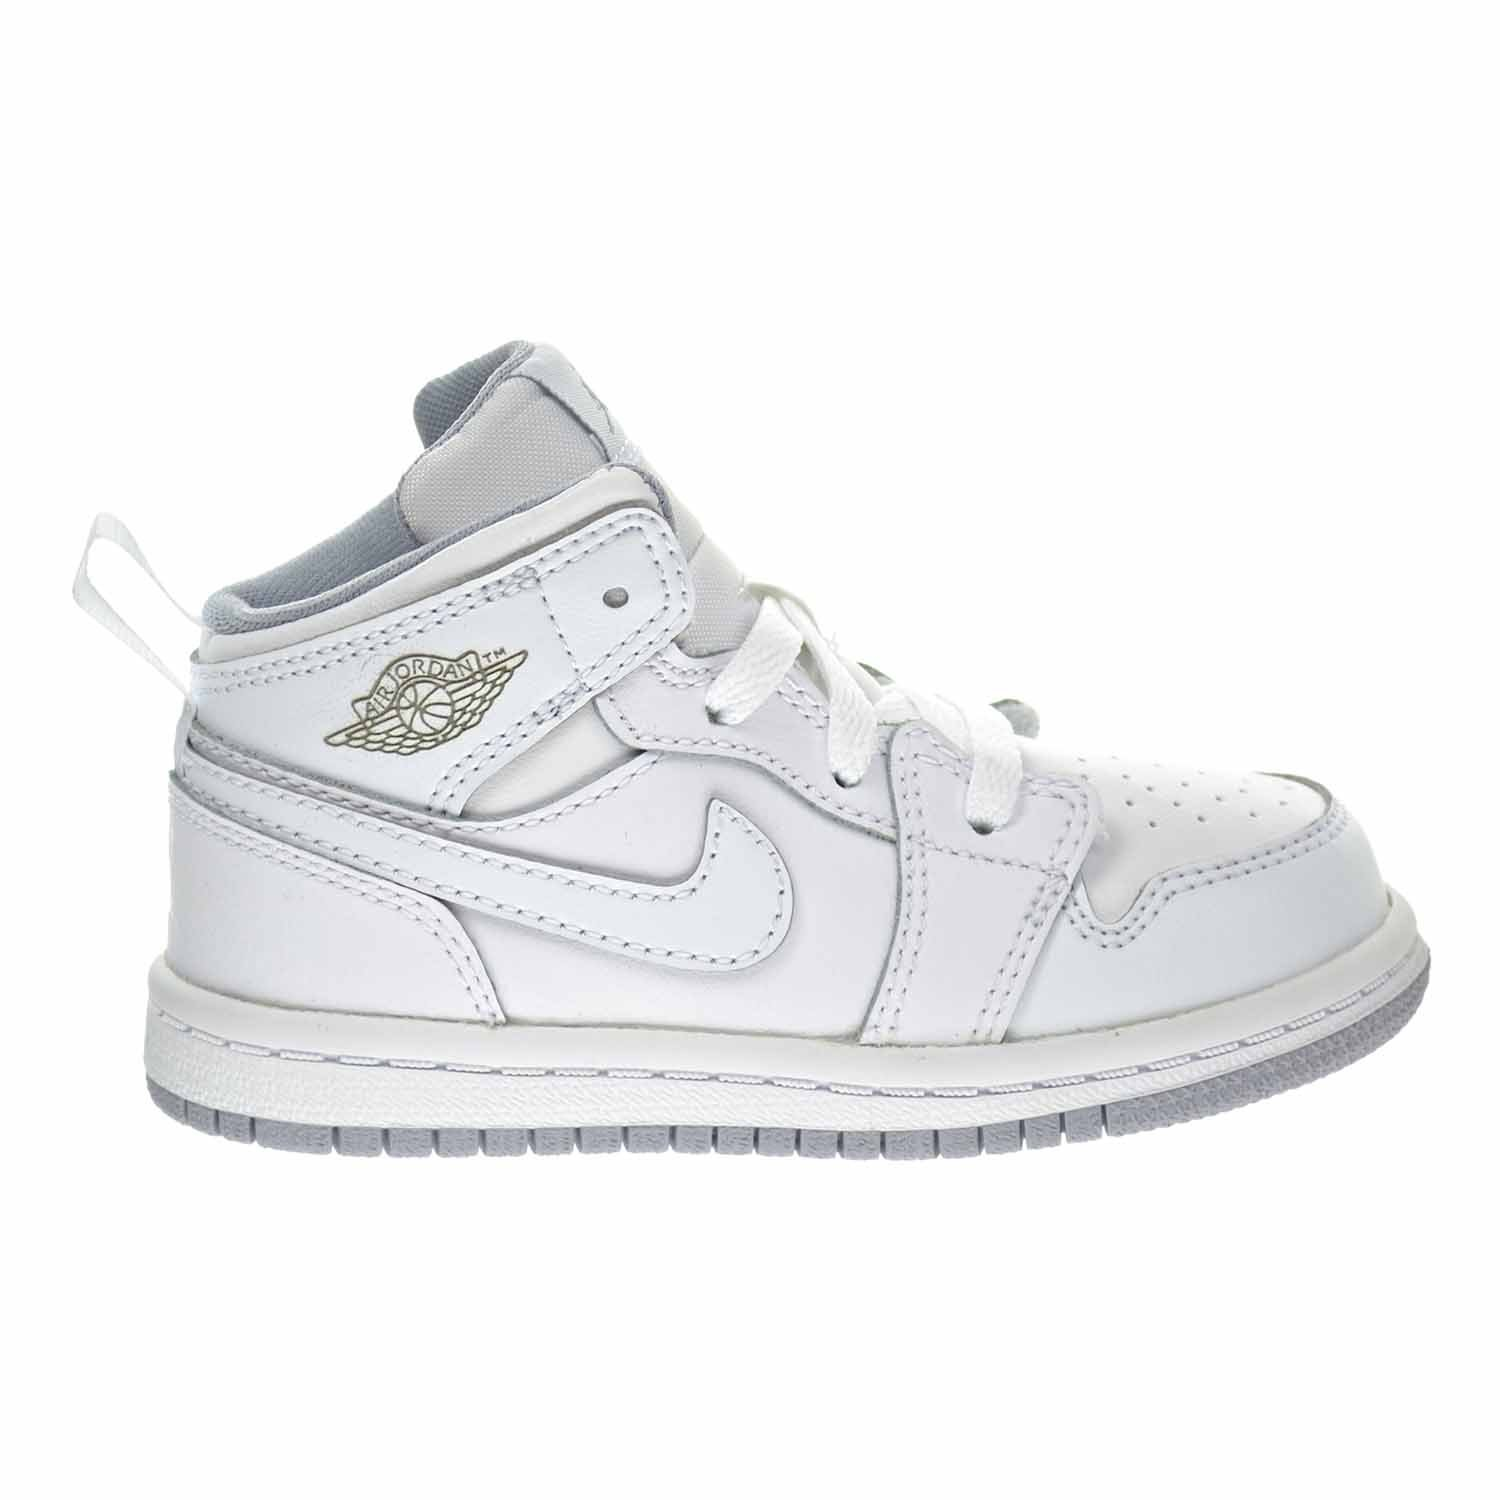 Jordan 1 Mid BT Todder's Shoes White/Wolf Grey 640735-112 (10 M US)